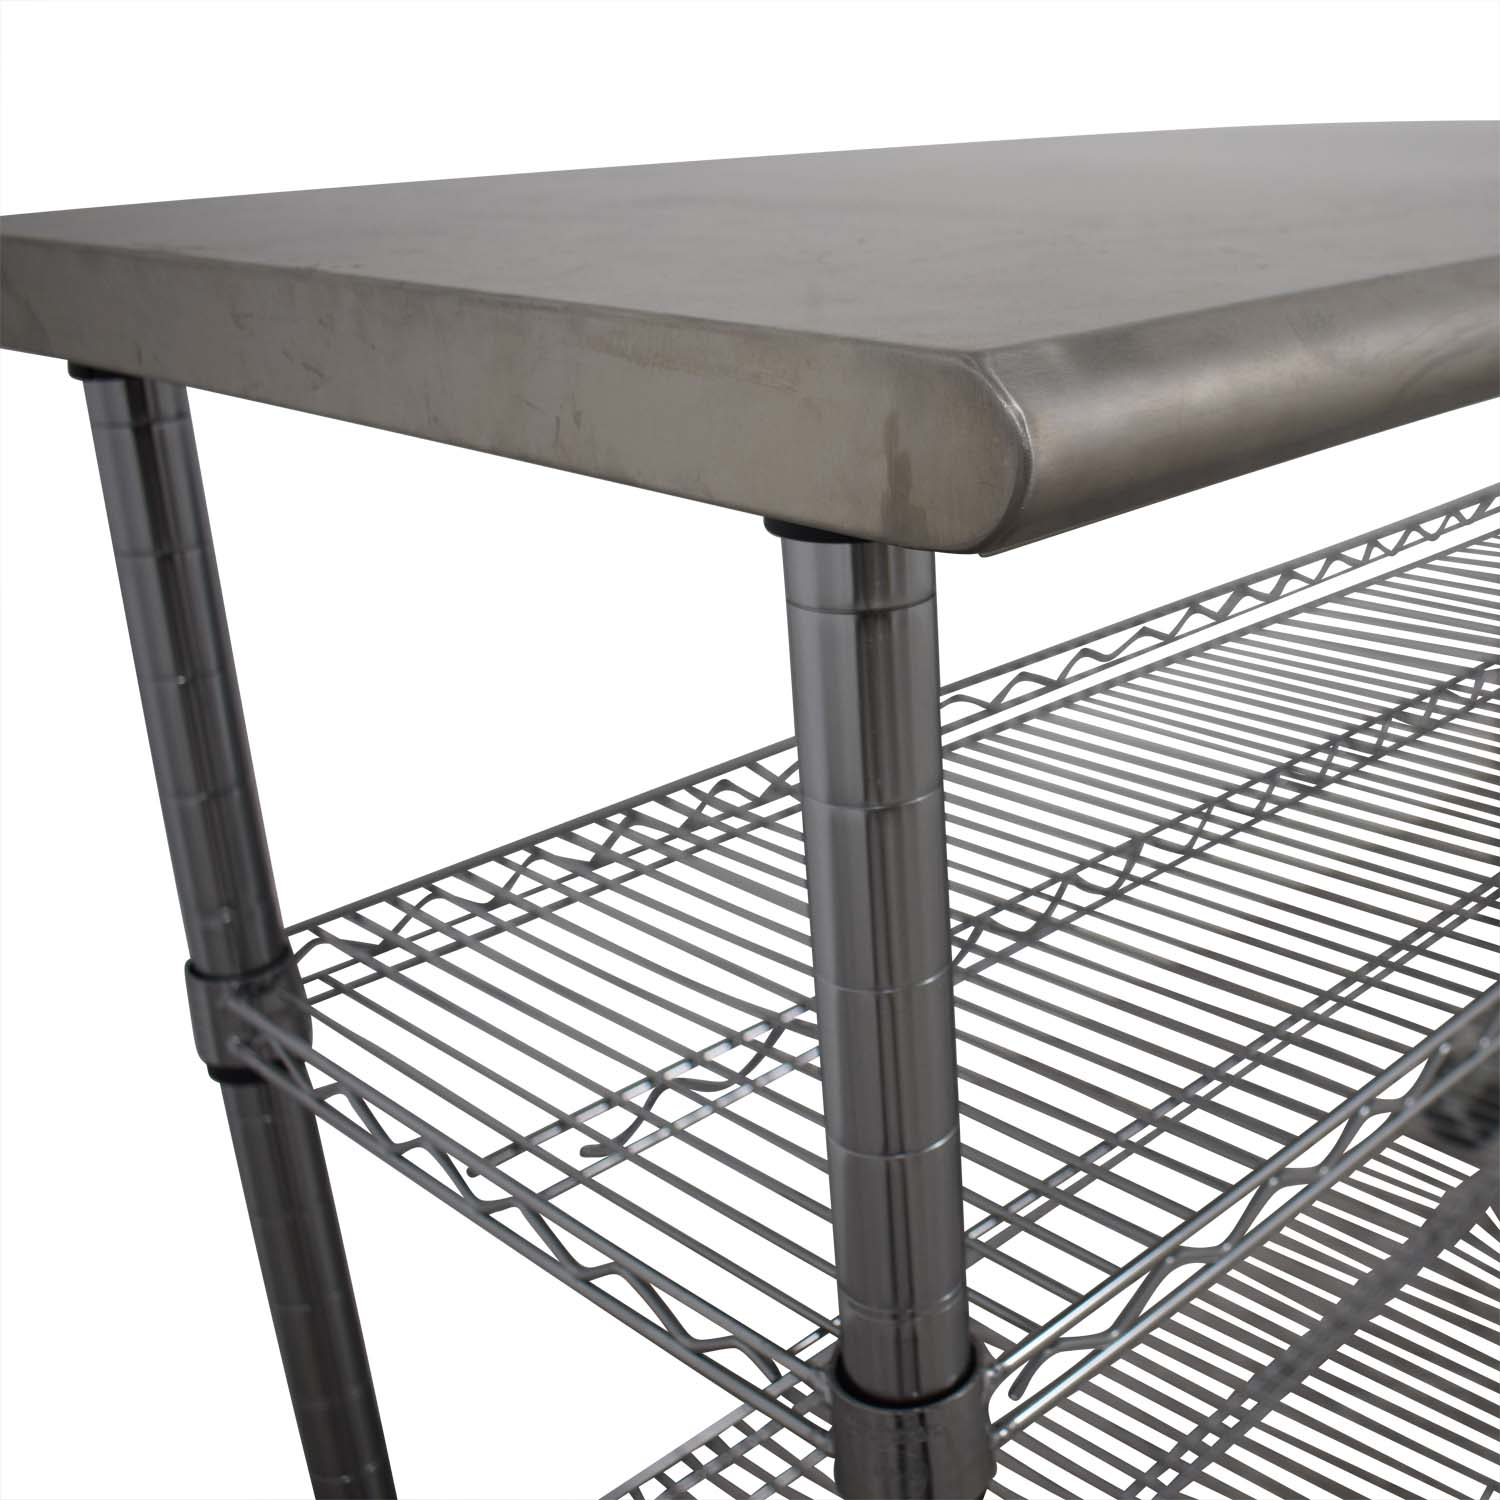 Home Depot Stainless Steel Utility Cart on Wheels / Tables